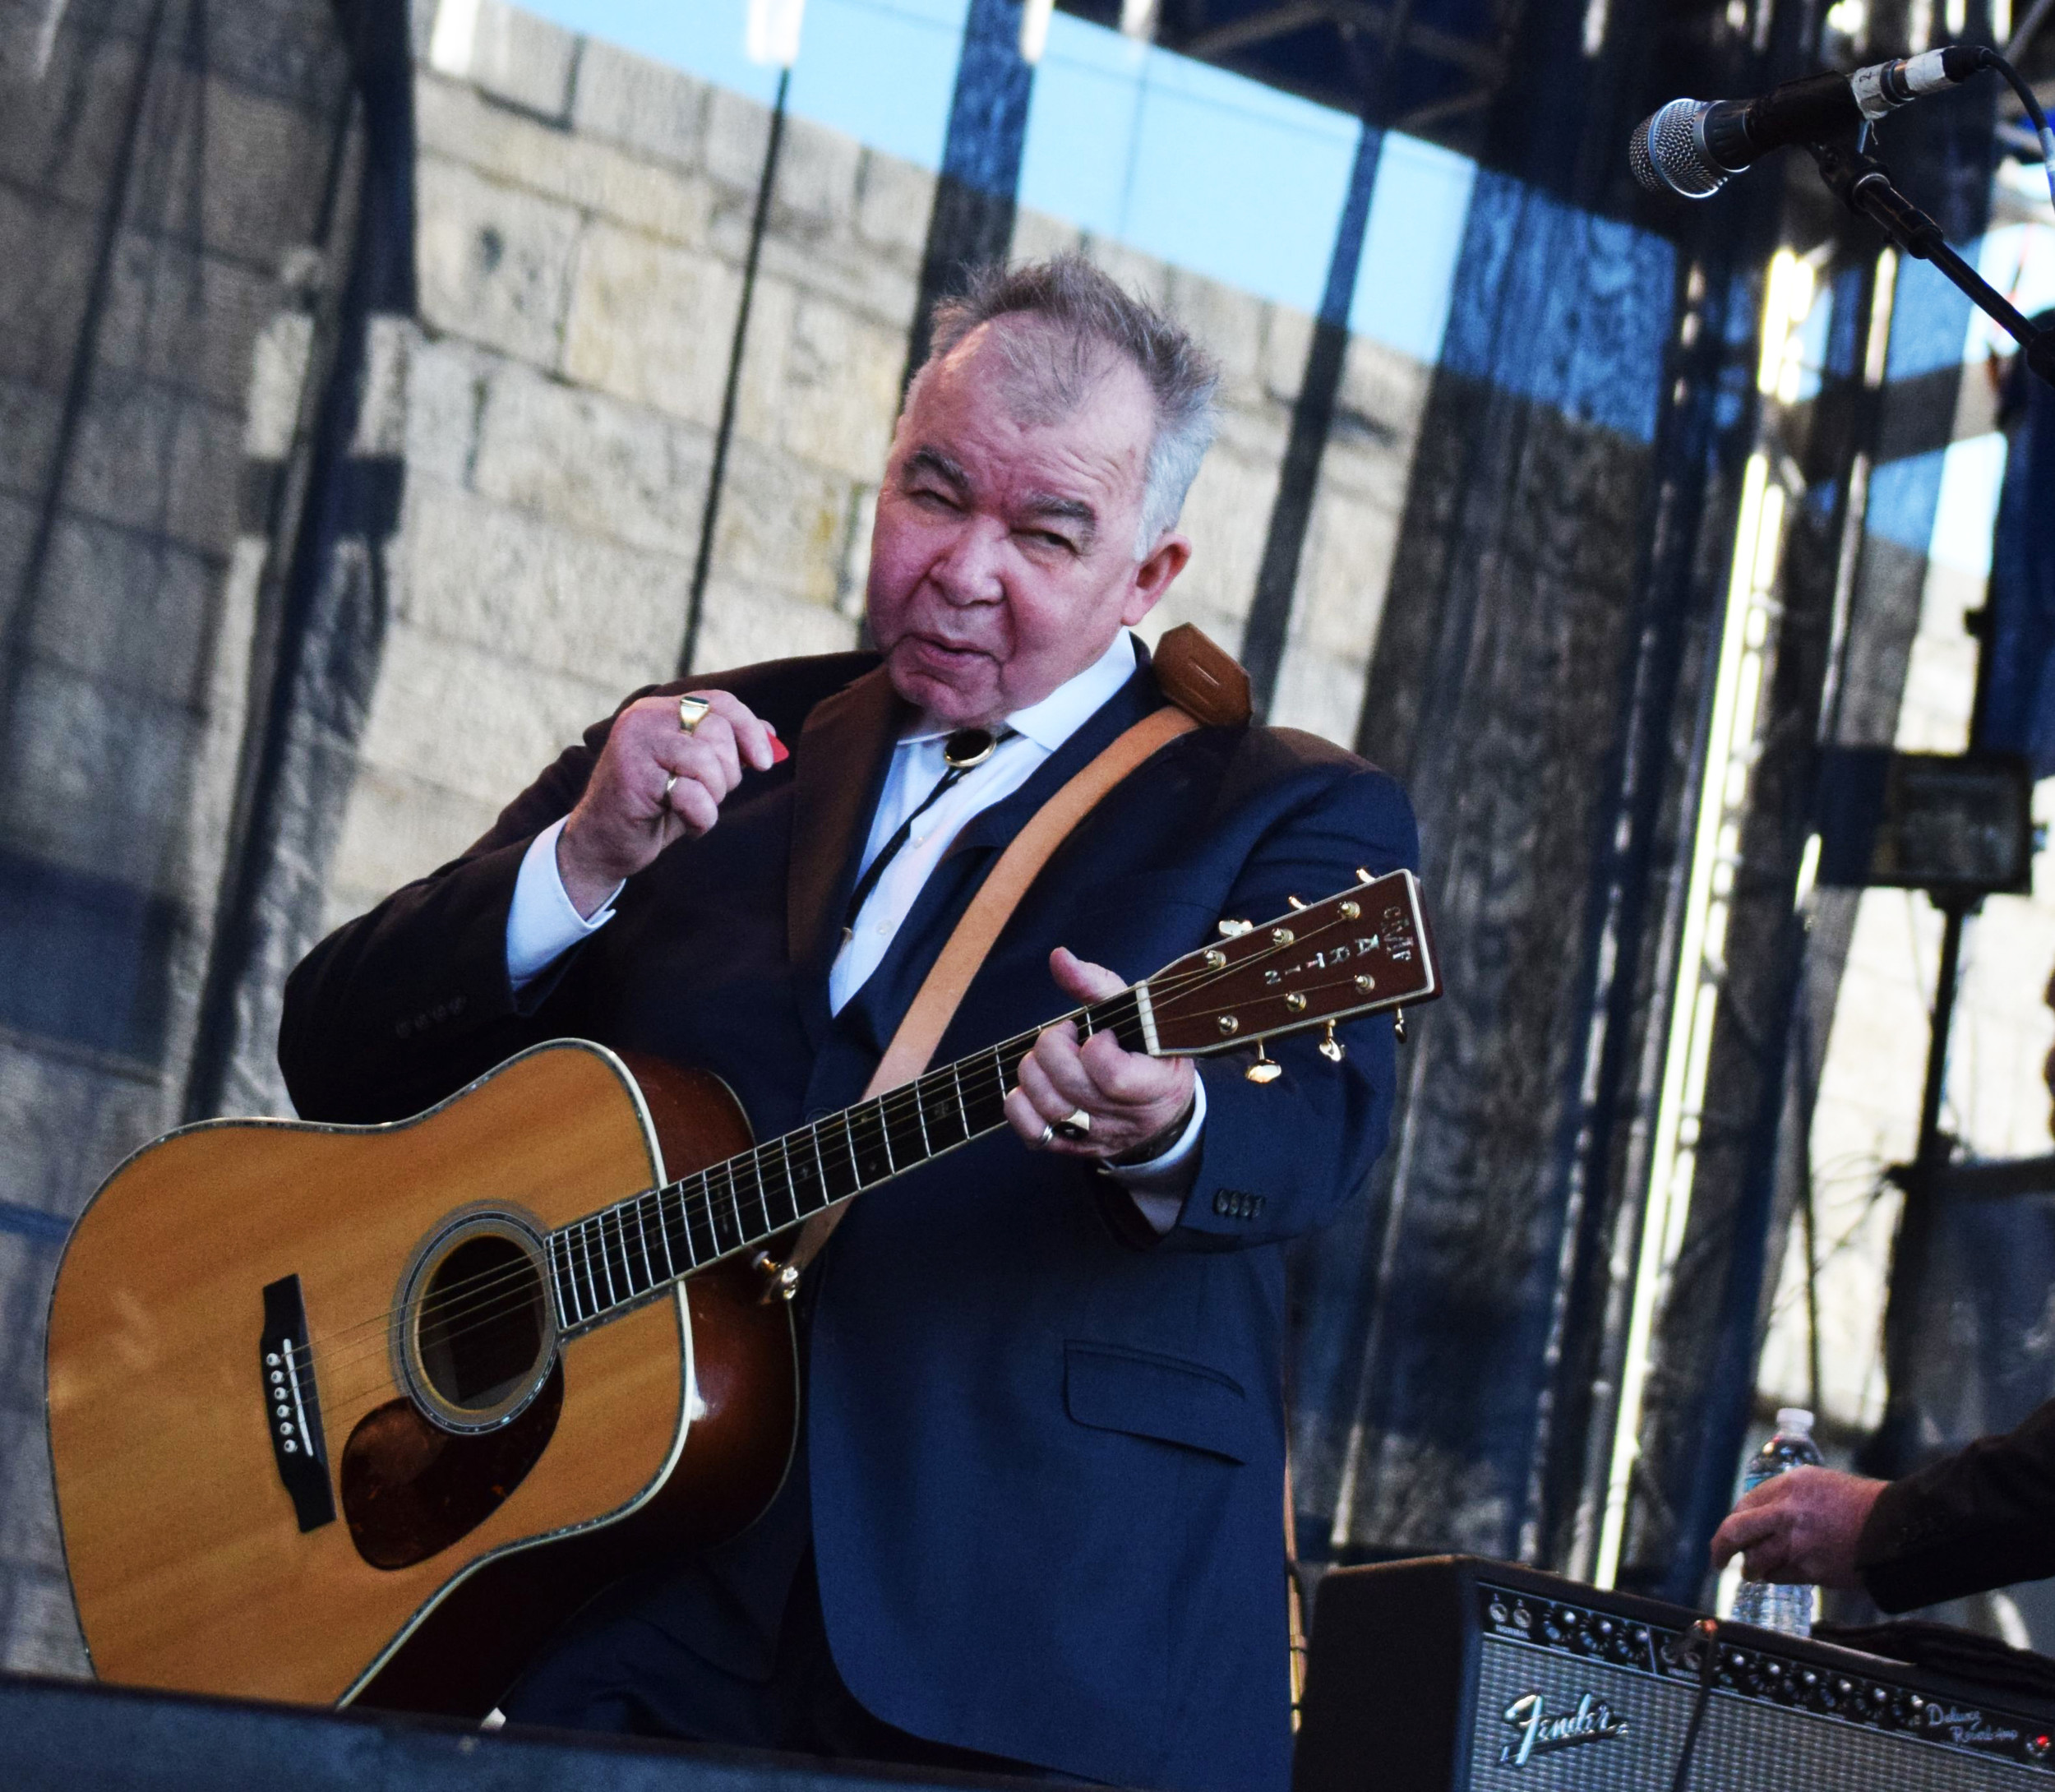 Country and folk singer/songwriter John Prine, 70, closed the 2017 Newport Folk Festival with an all-star band on Sunday, July 30.